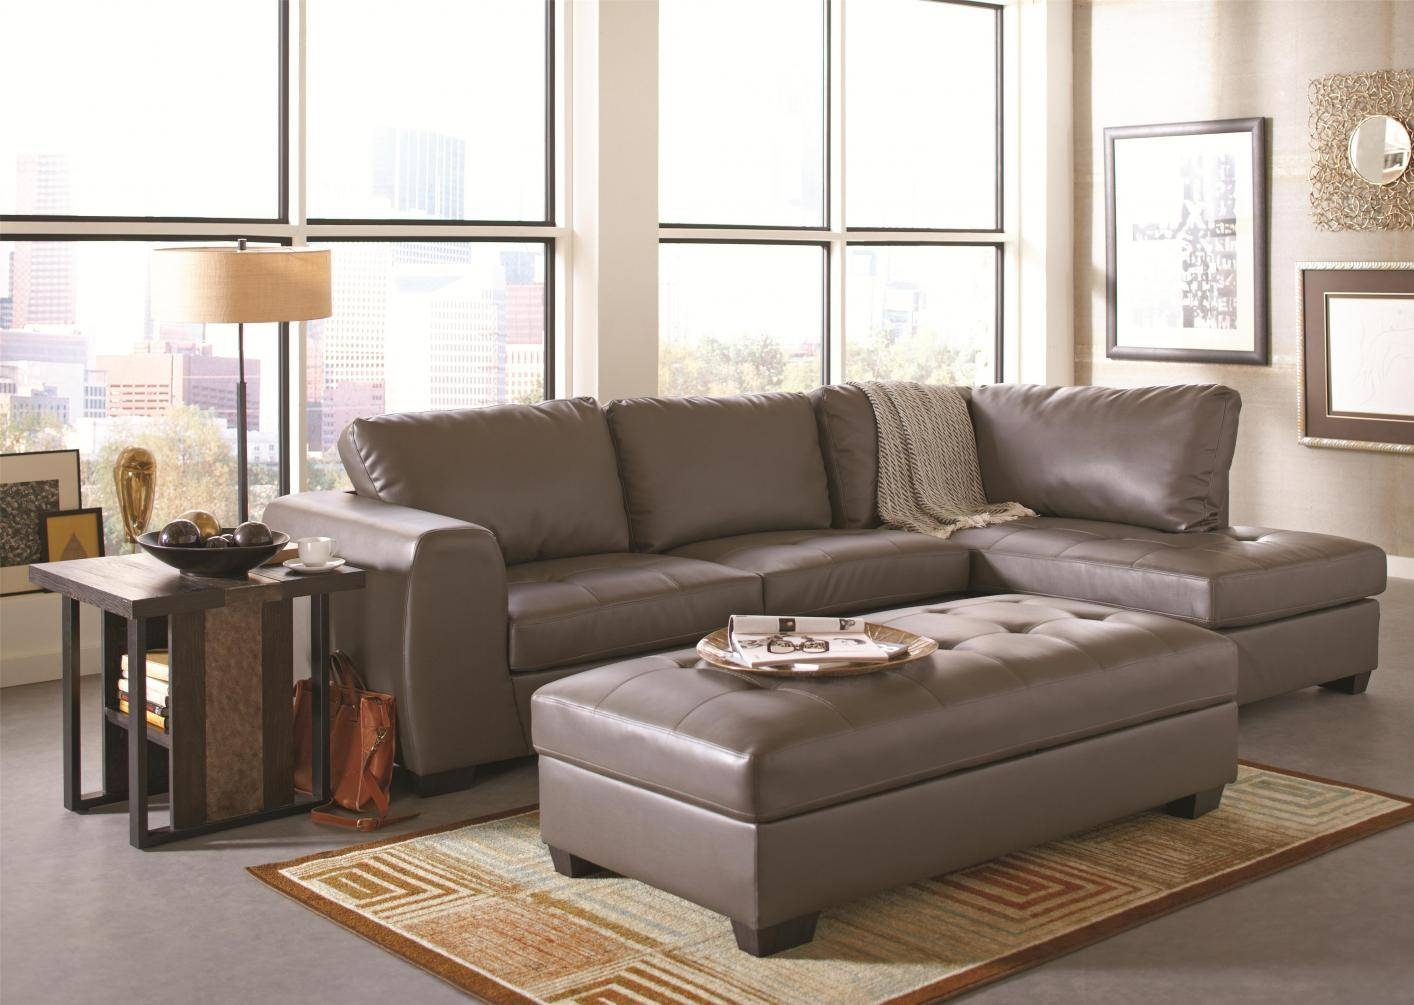 Grey Leather Sectional Sofa - Steal-A-Sofa Furniture Outlet Los with regard to Gray Leather Sectional Sofas (Image 18 of 30)